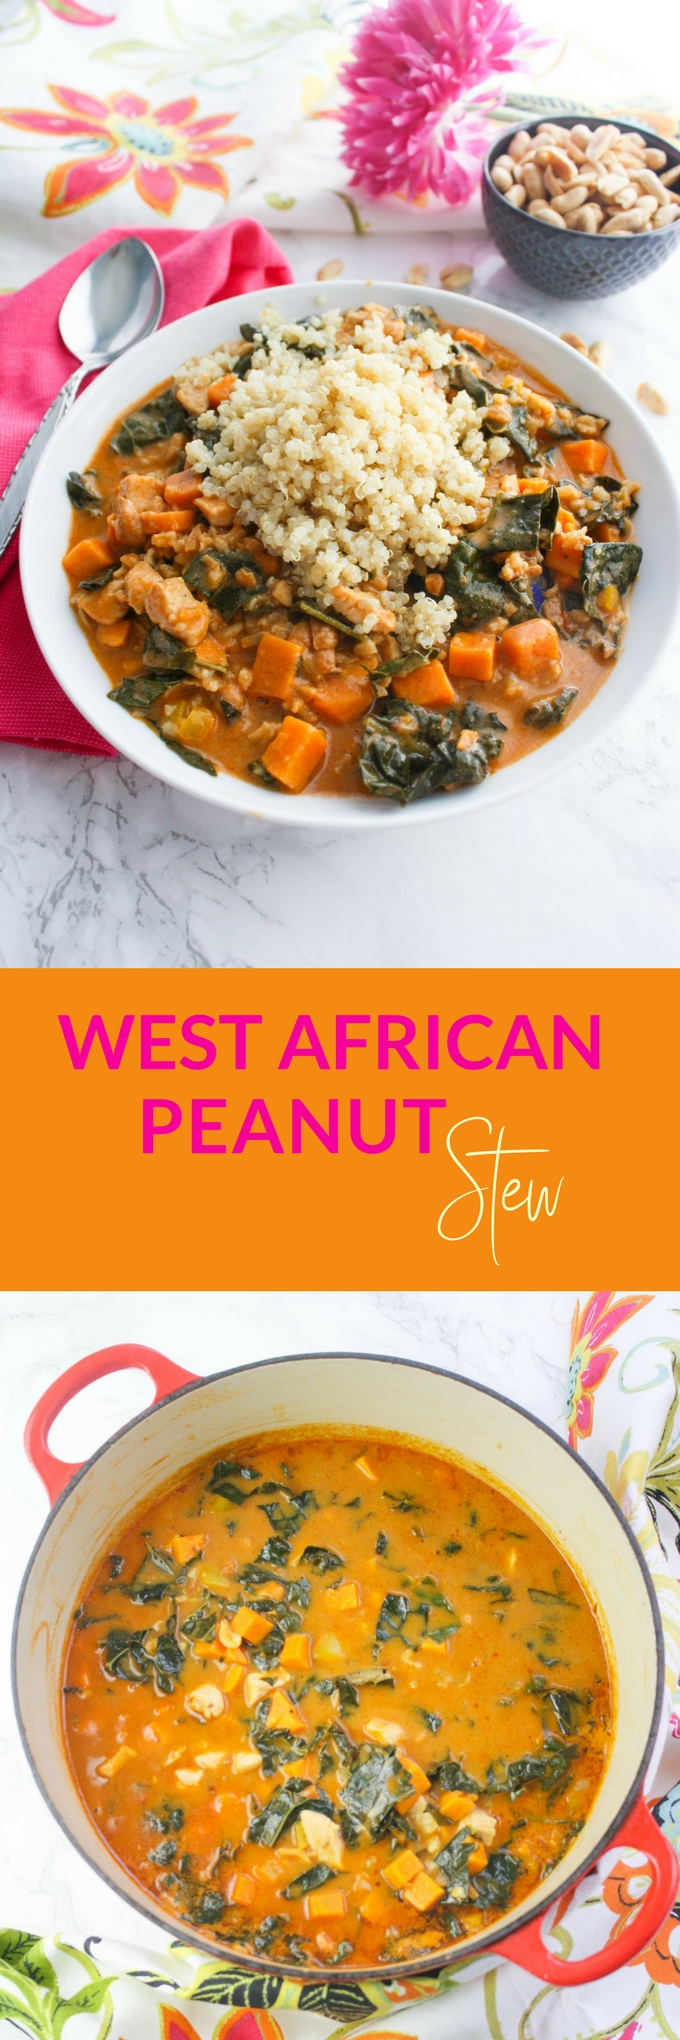 West African Peanut Stew is a delicious stew you need to make soon! What a treat West African Peanut Stew is for the senses!